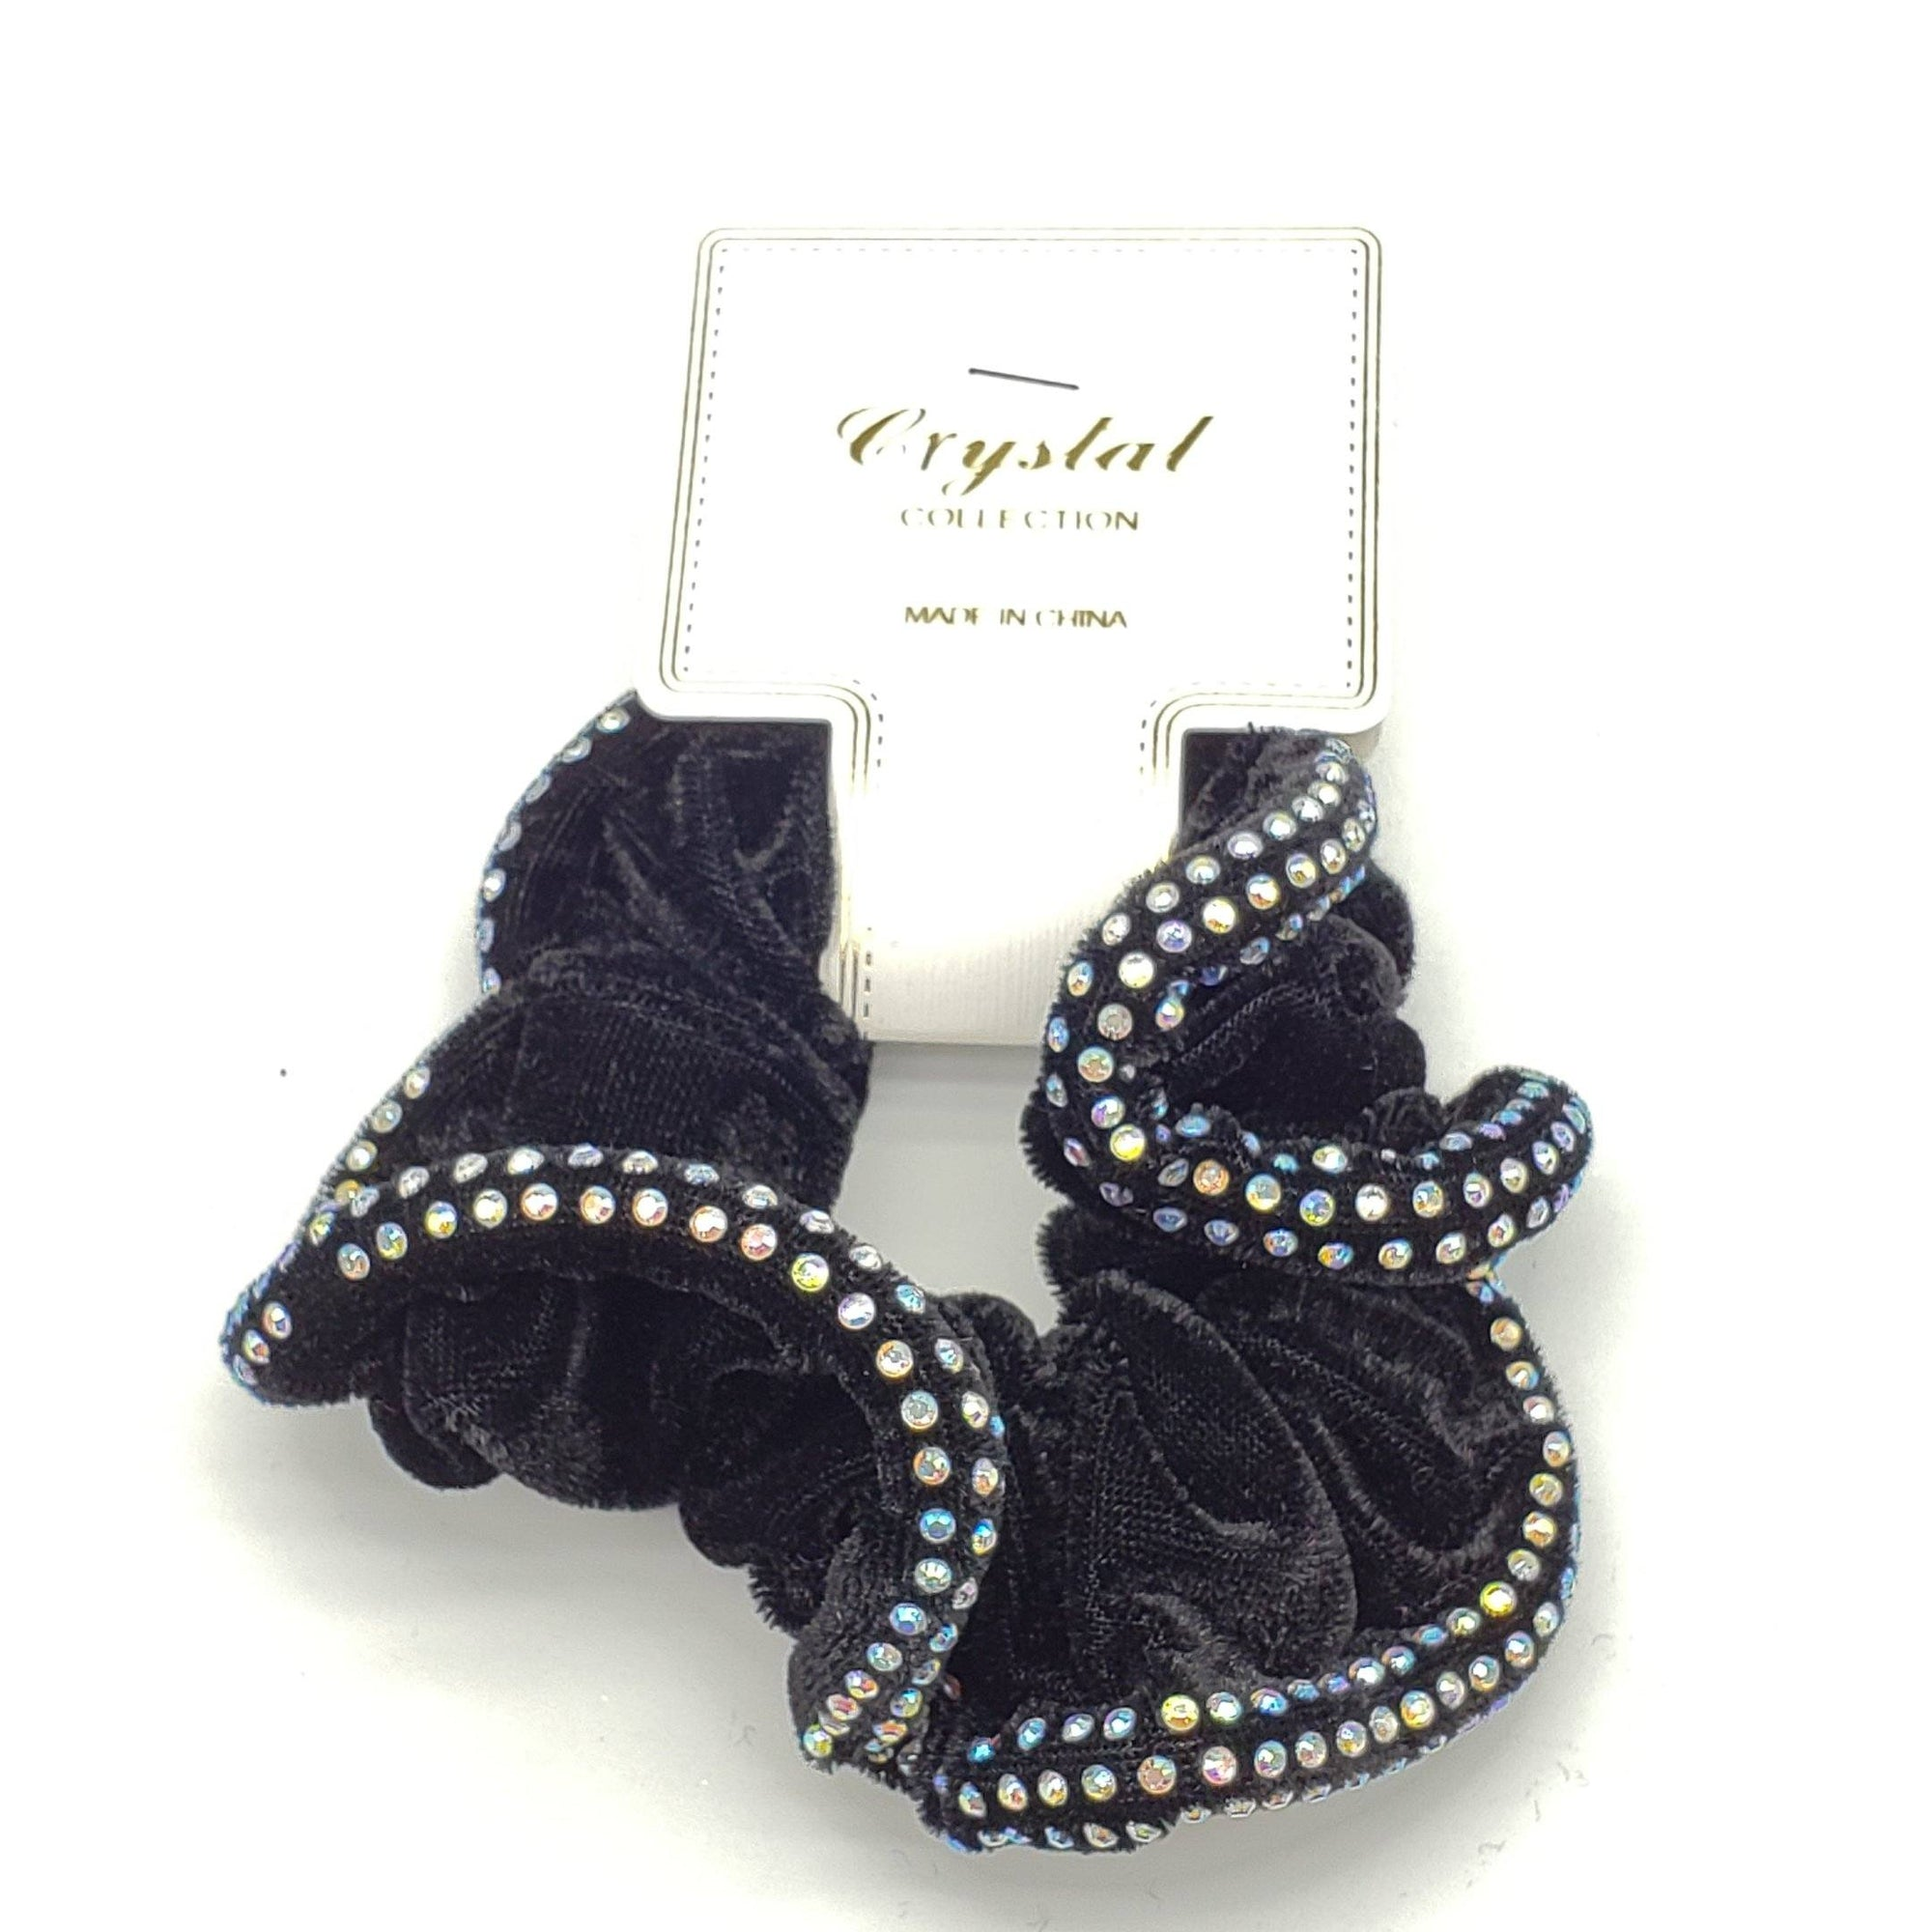 Crystal Collection Velvet Rhinestone Scrunchies #DHP0291B (12PC)